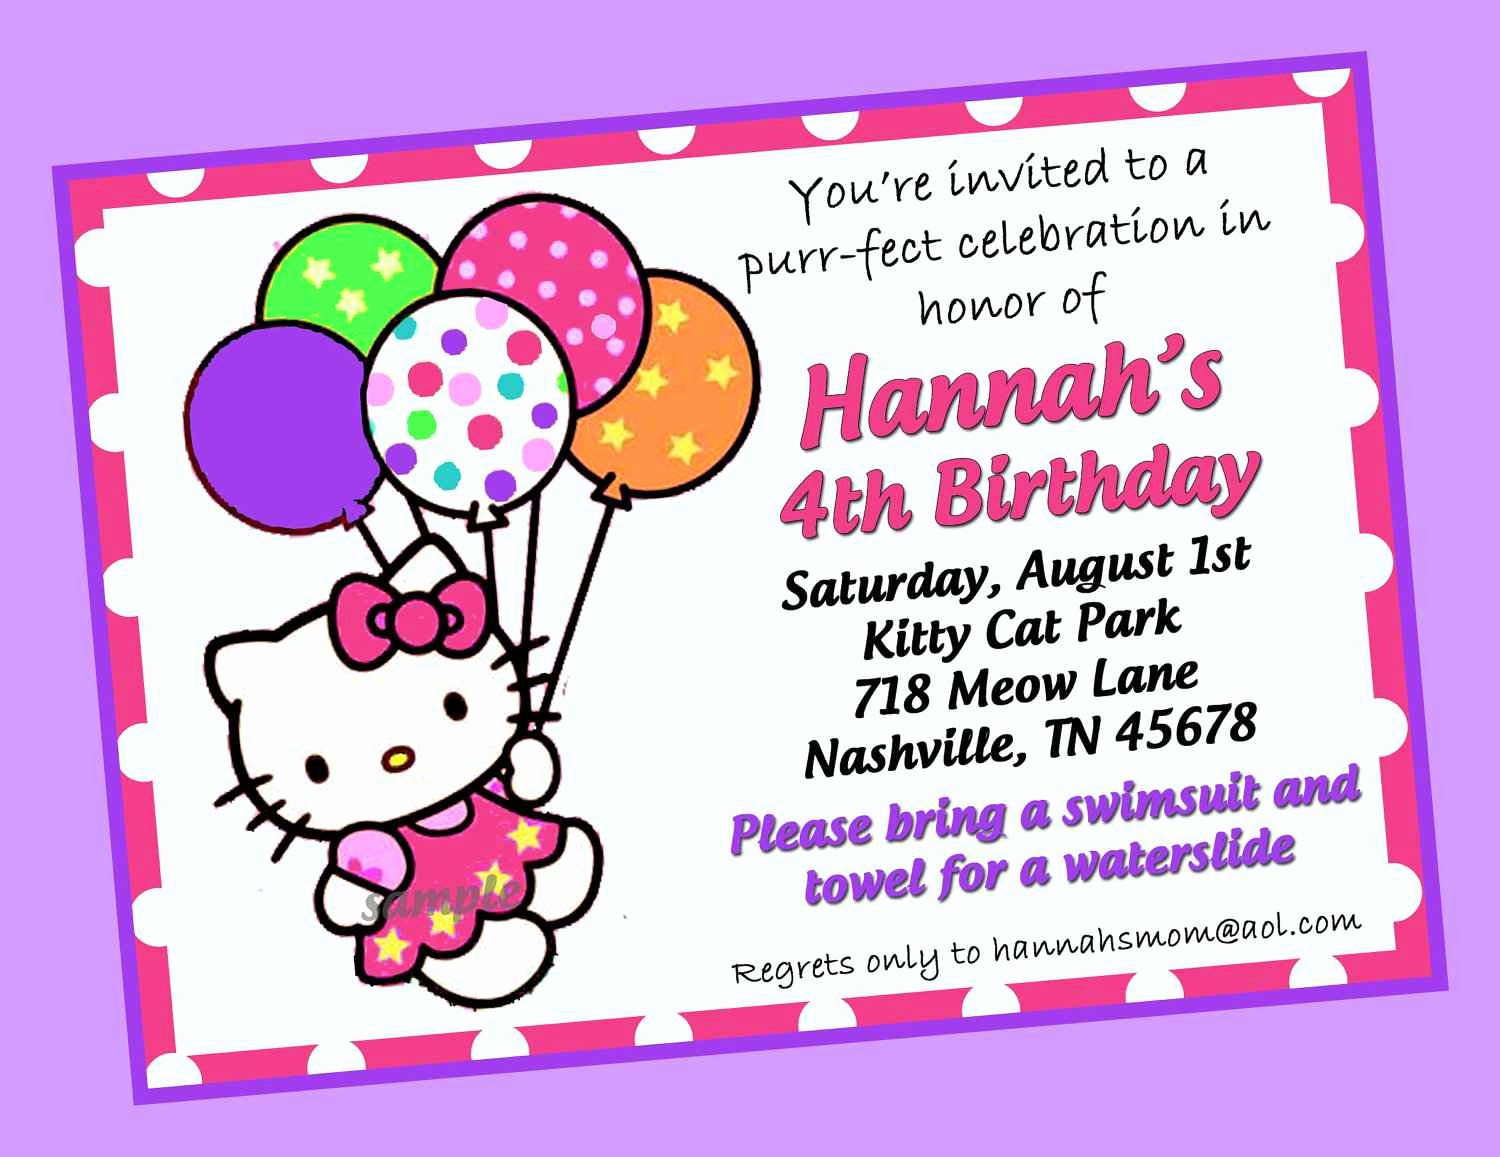 Hello Kitty Invitation Card Awesome Hello Kitty Birthday Invitation Card